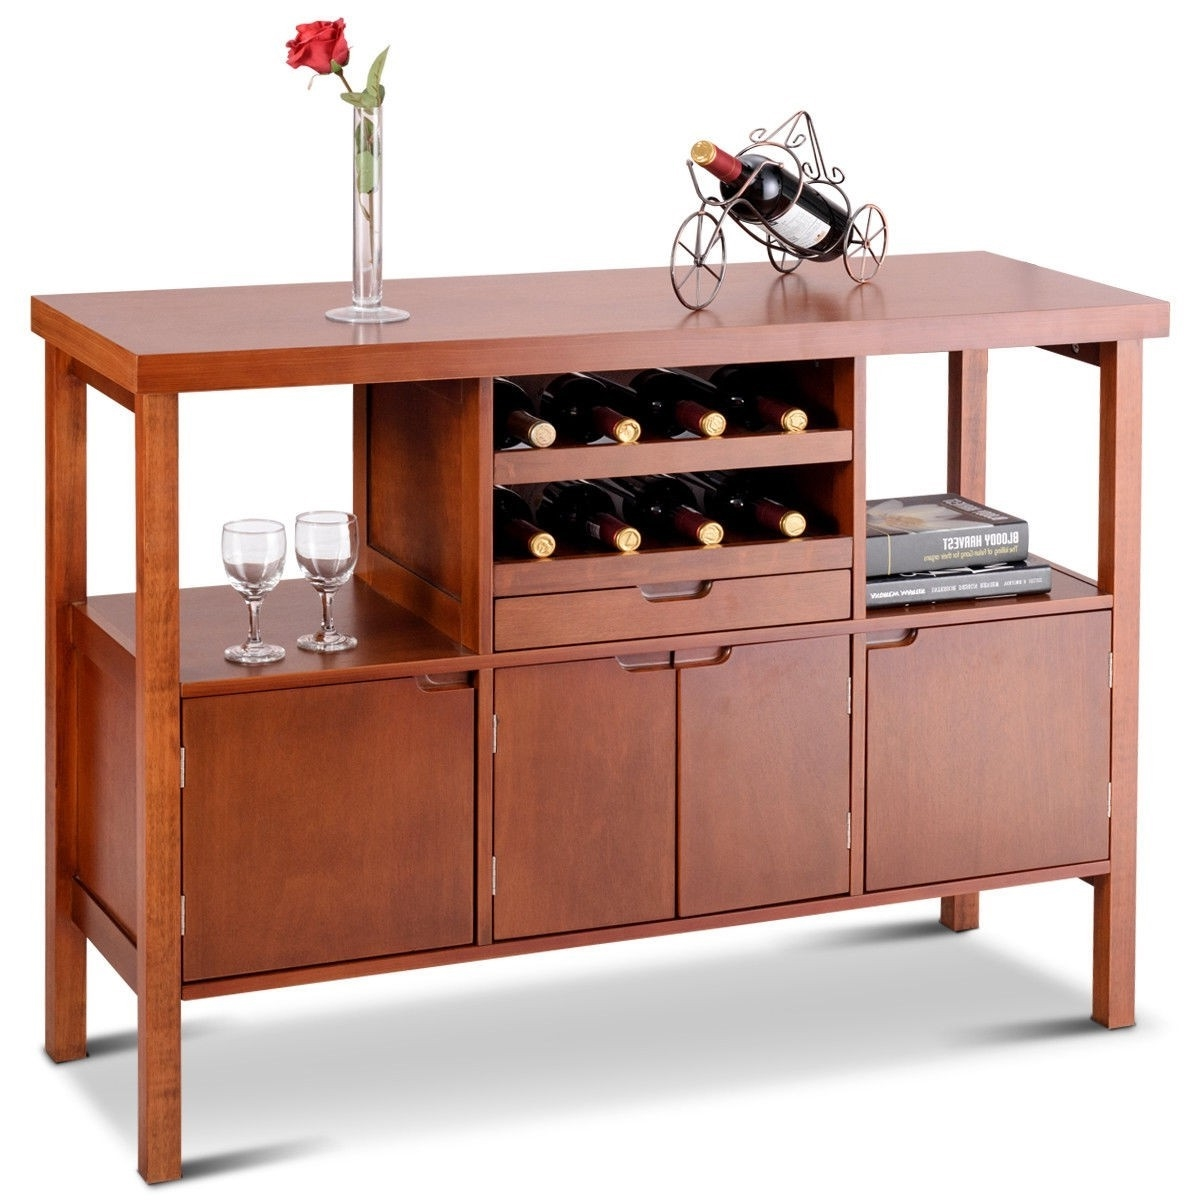 Picture of: Modern Sideboard Buffet Cabinet With Wine Rack In Brown Wood Finish Fastfurnishings Com